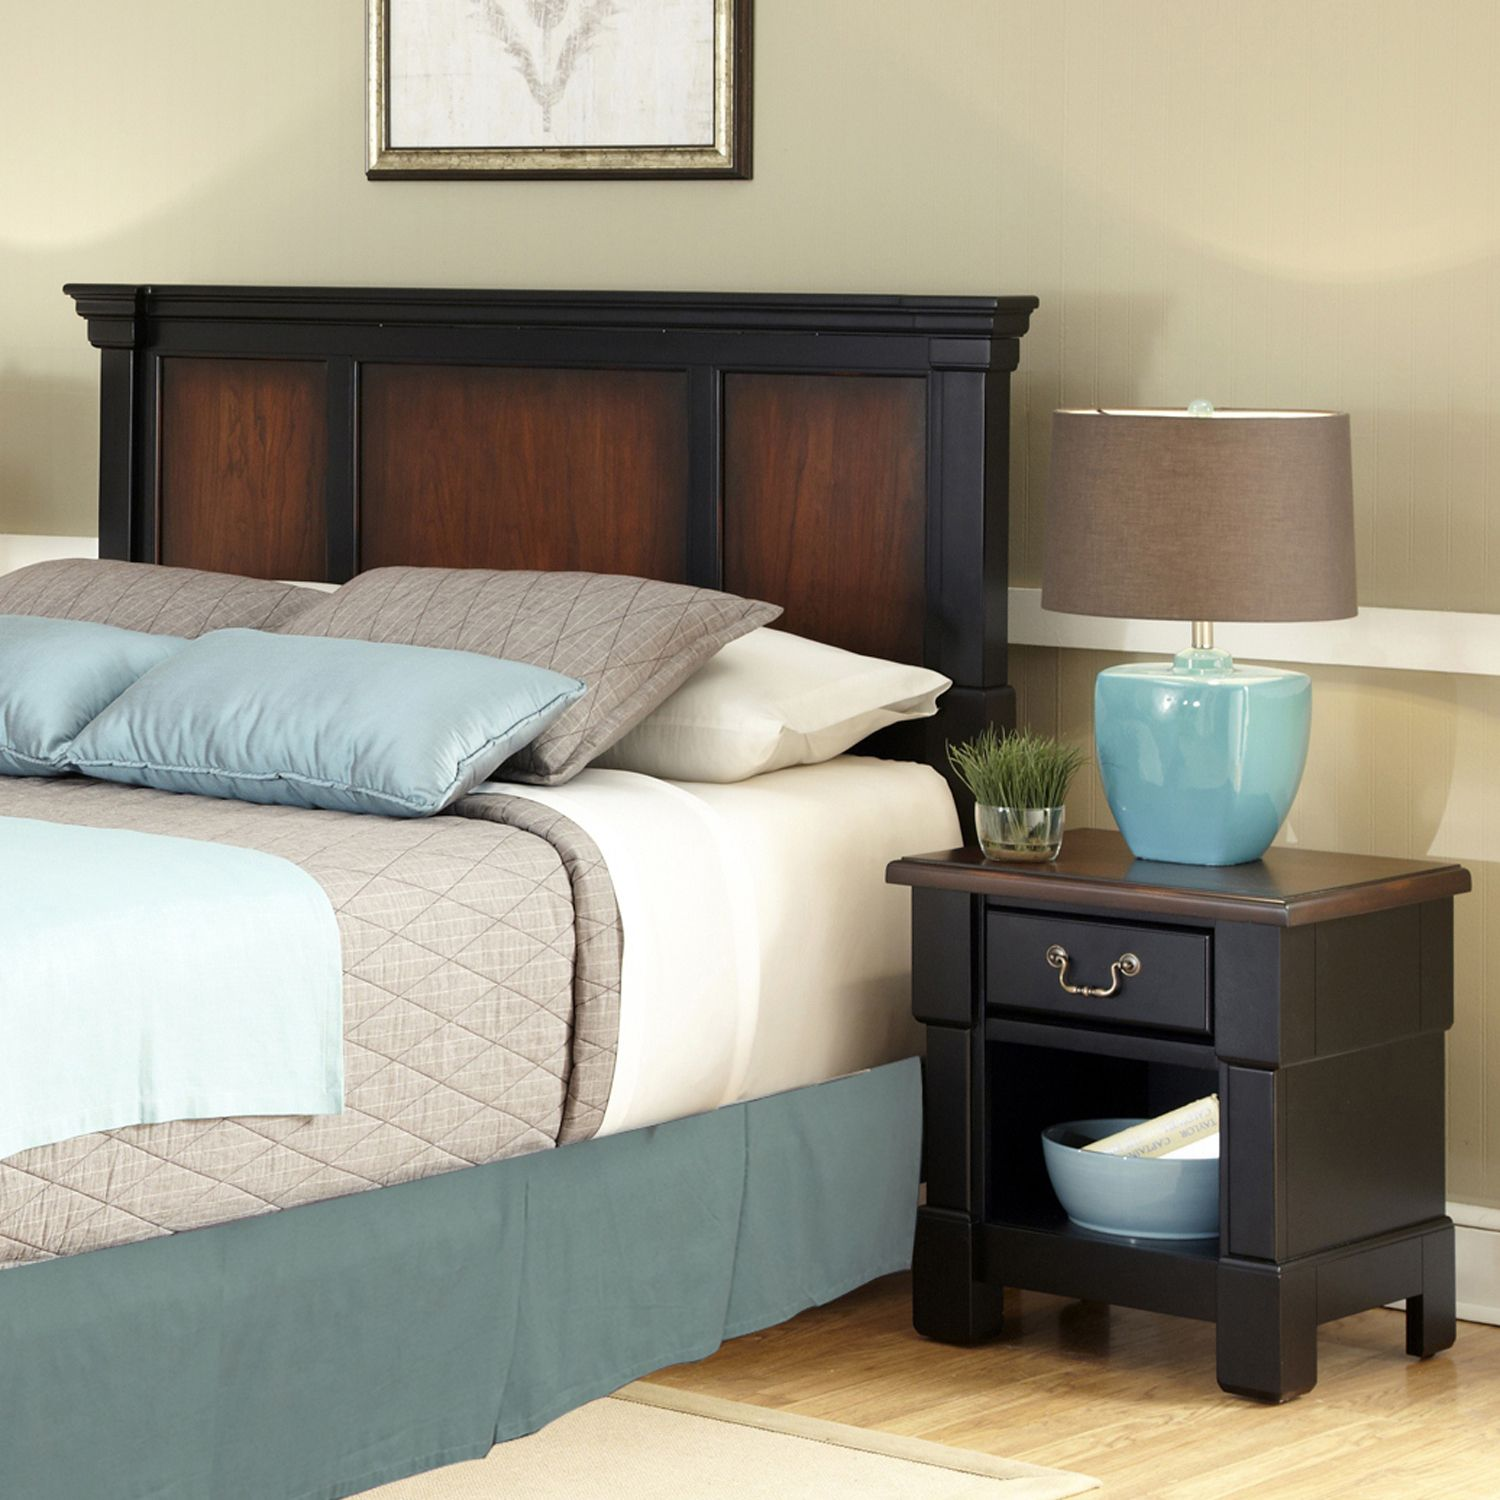 Lovely Queen Full Headboard u Nightstand Set